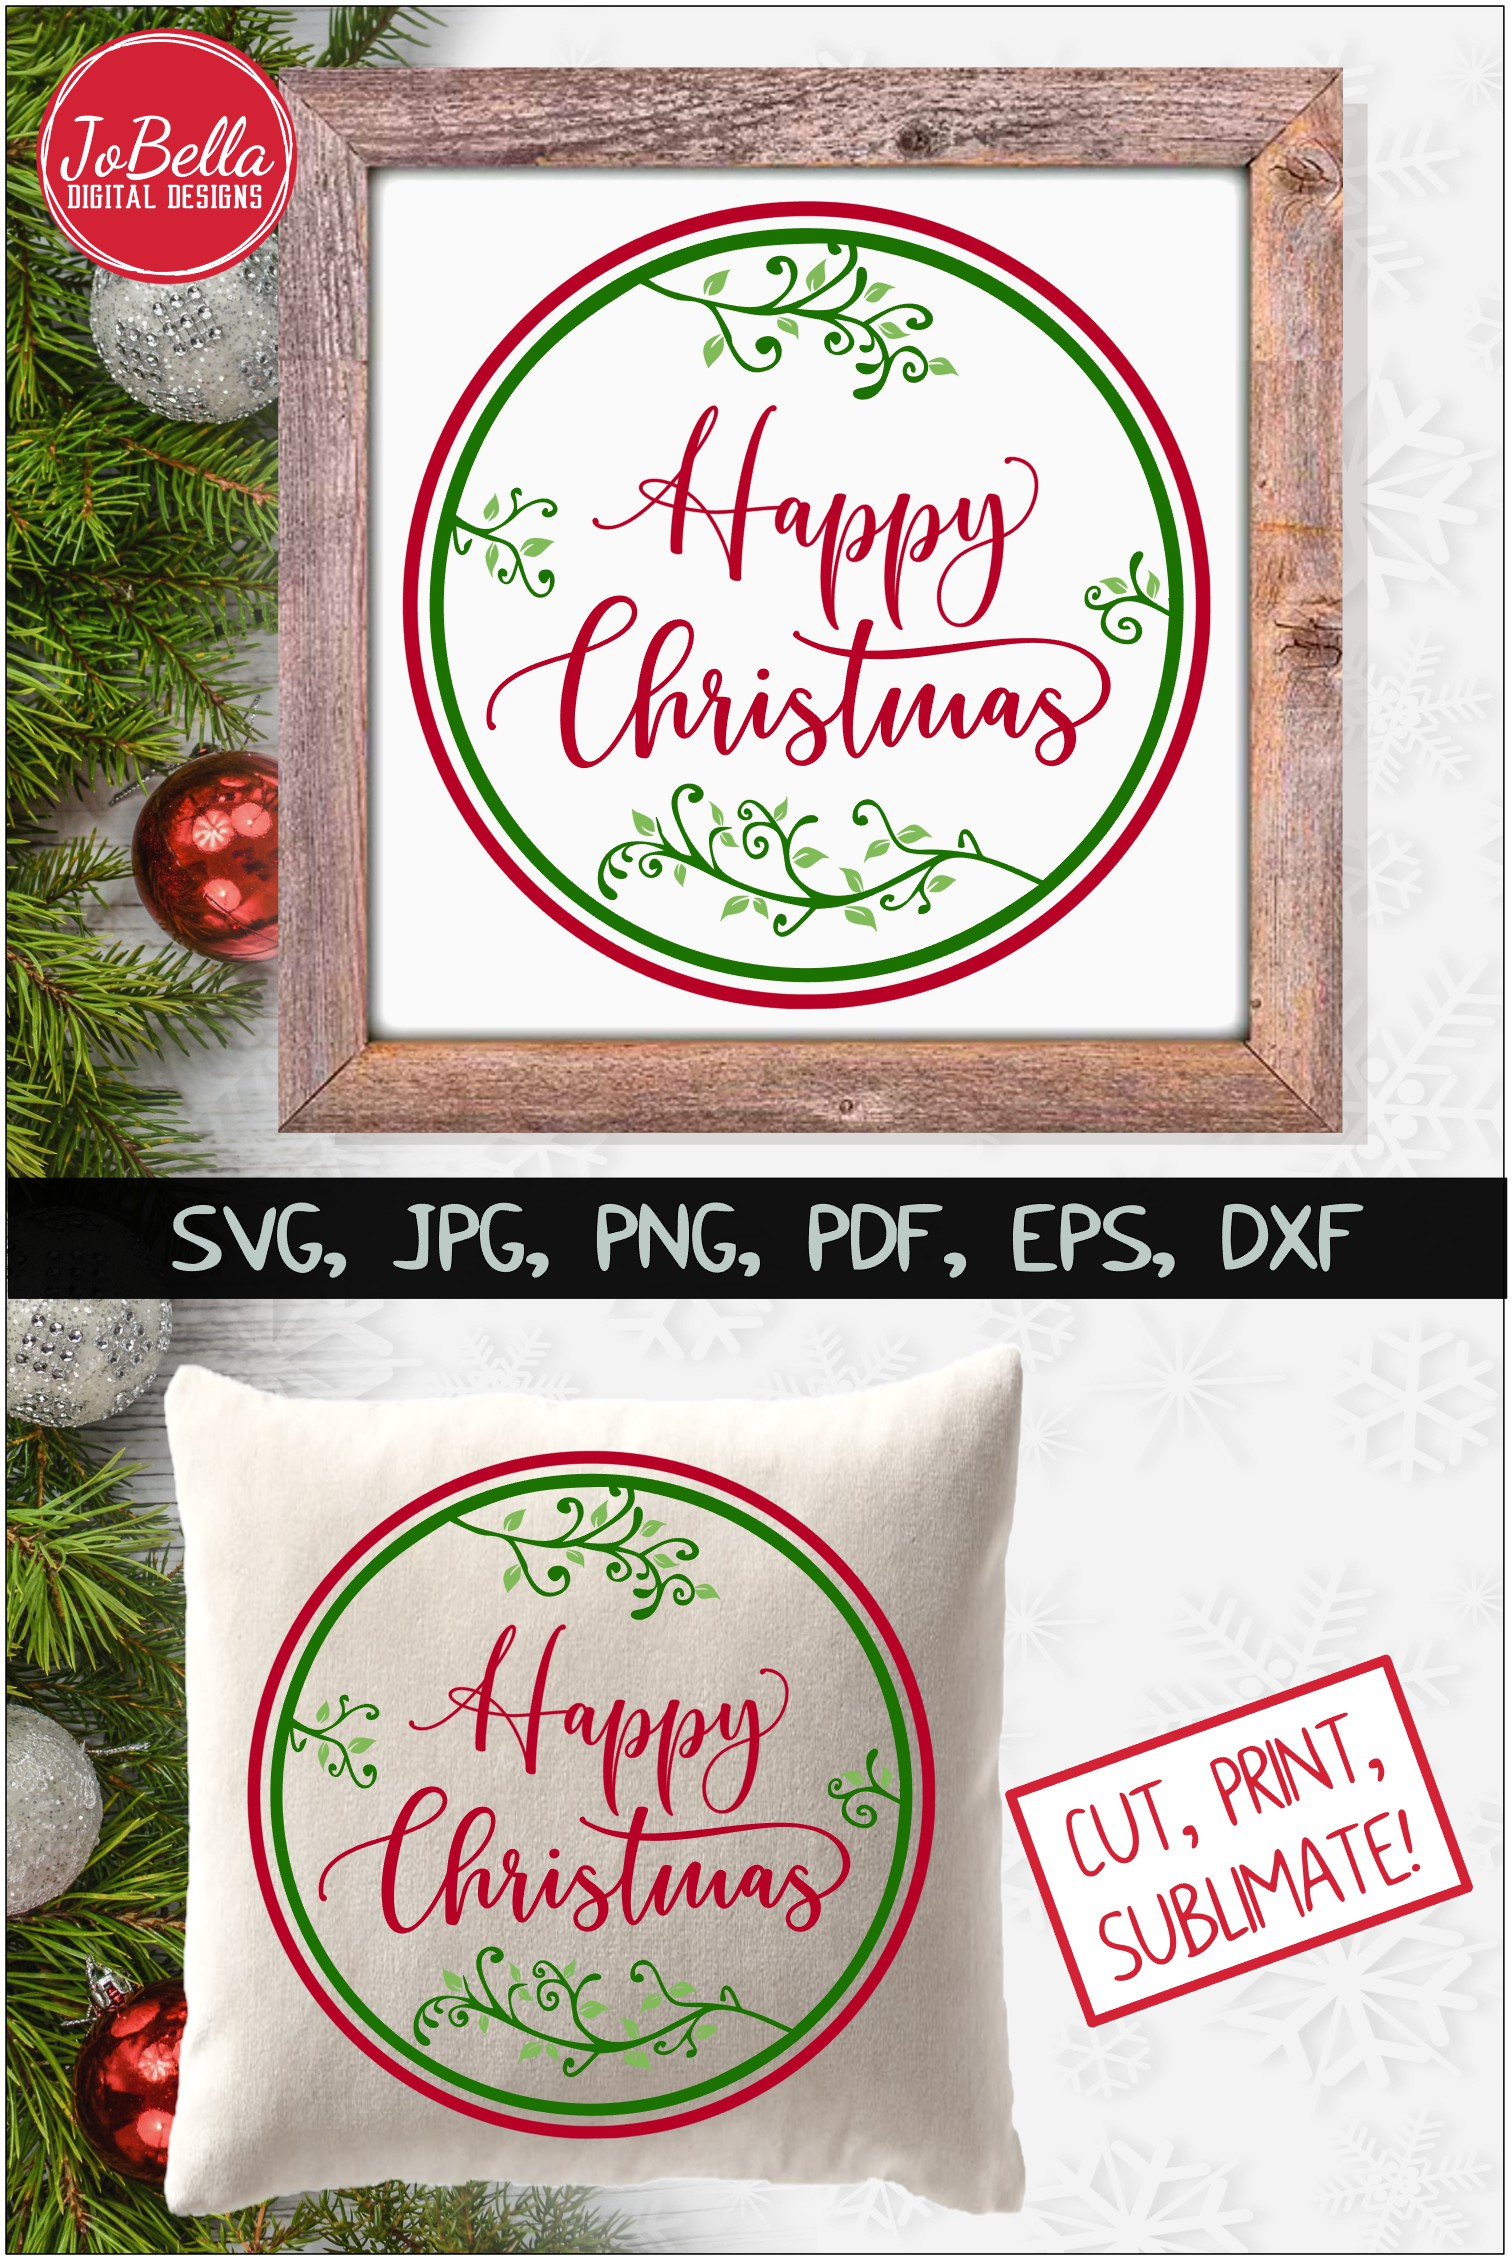 Happy Christmas SVG Printable & Sublimation PNG example image 4